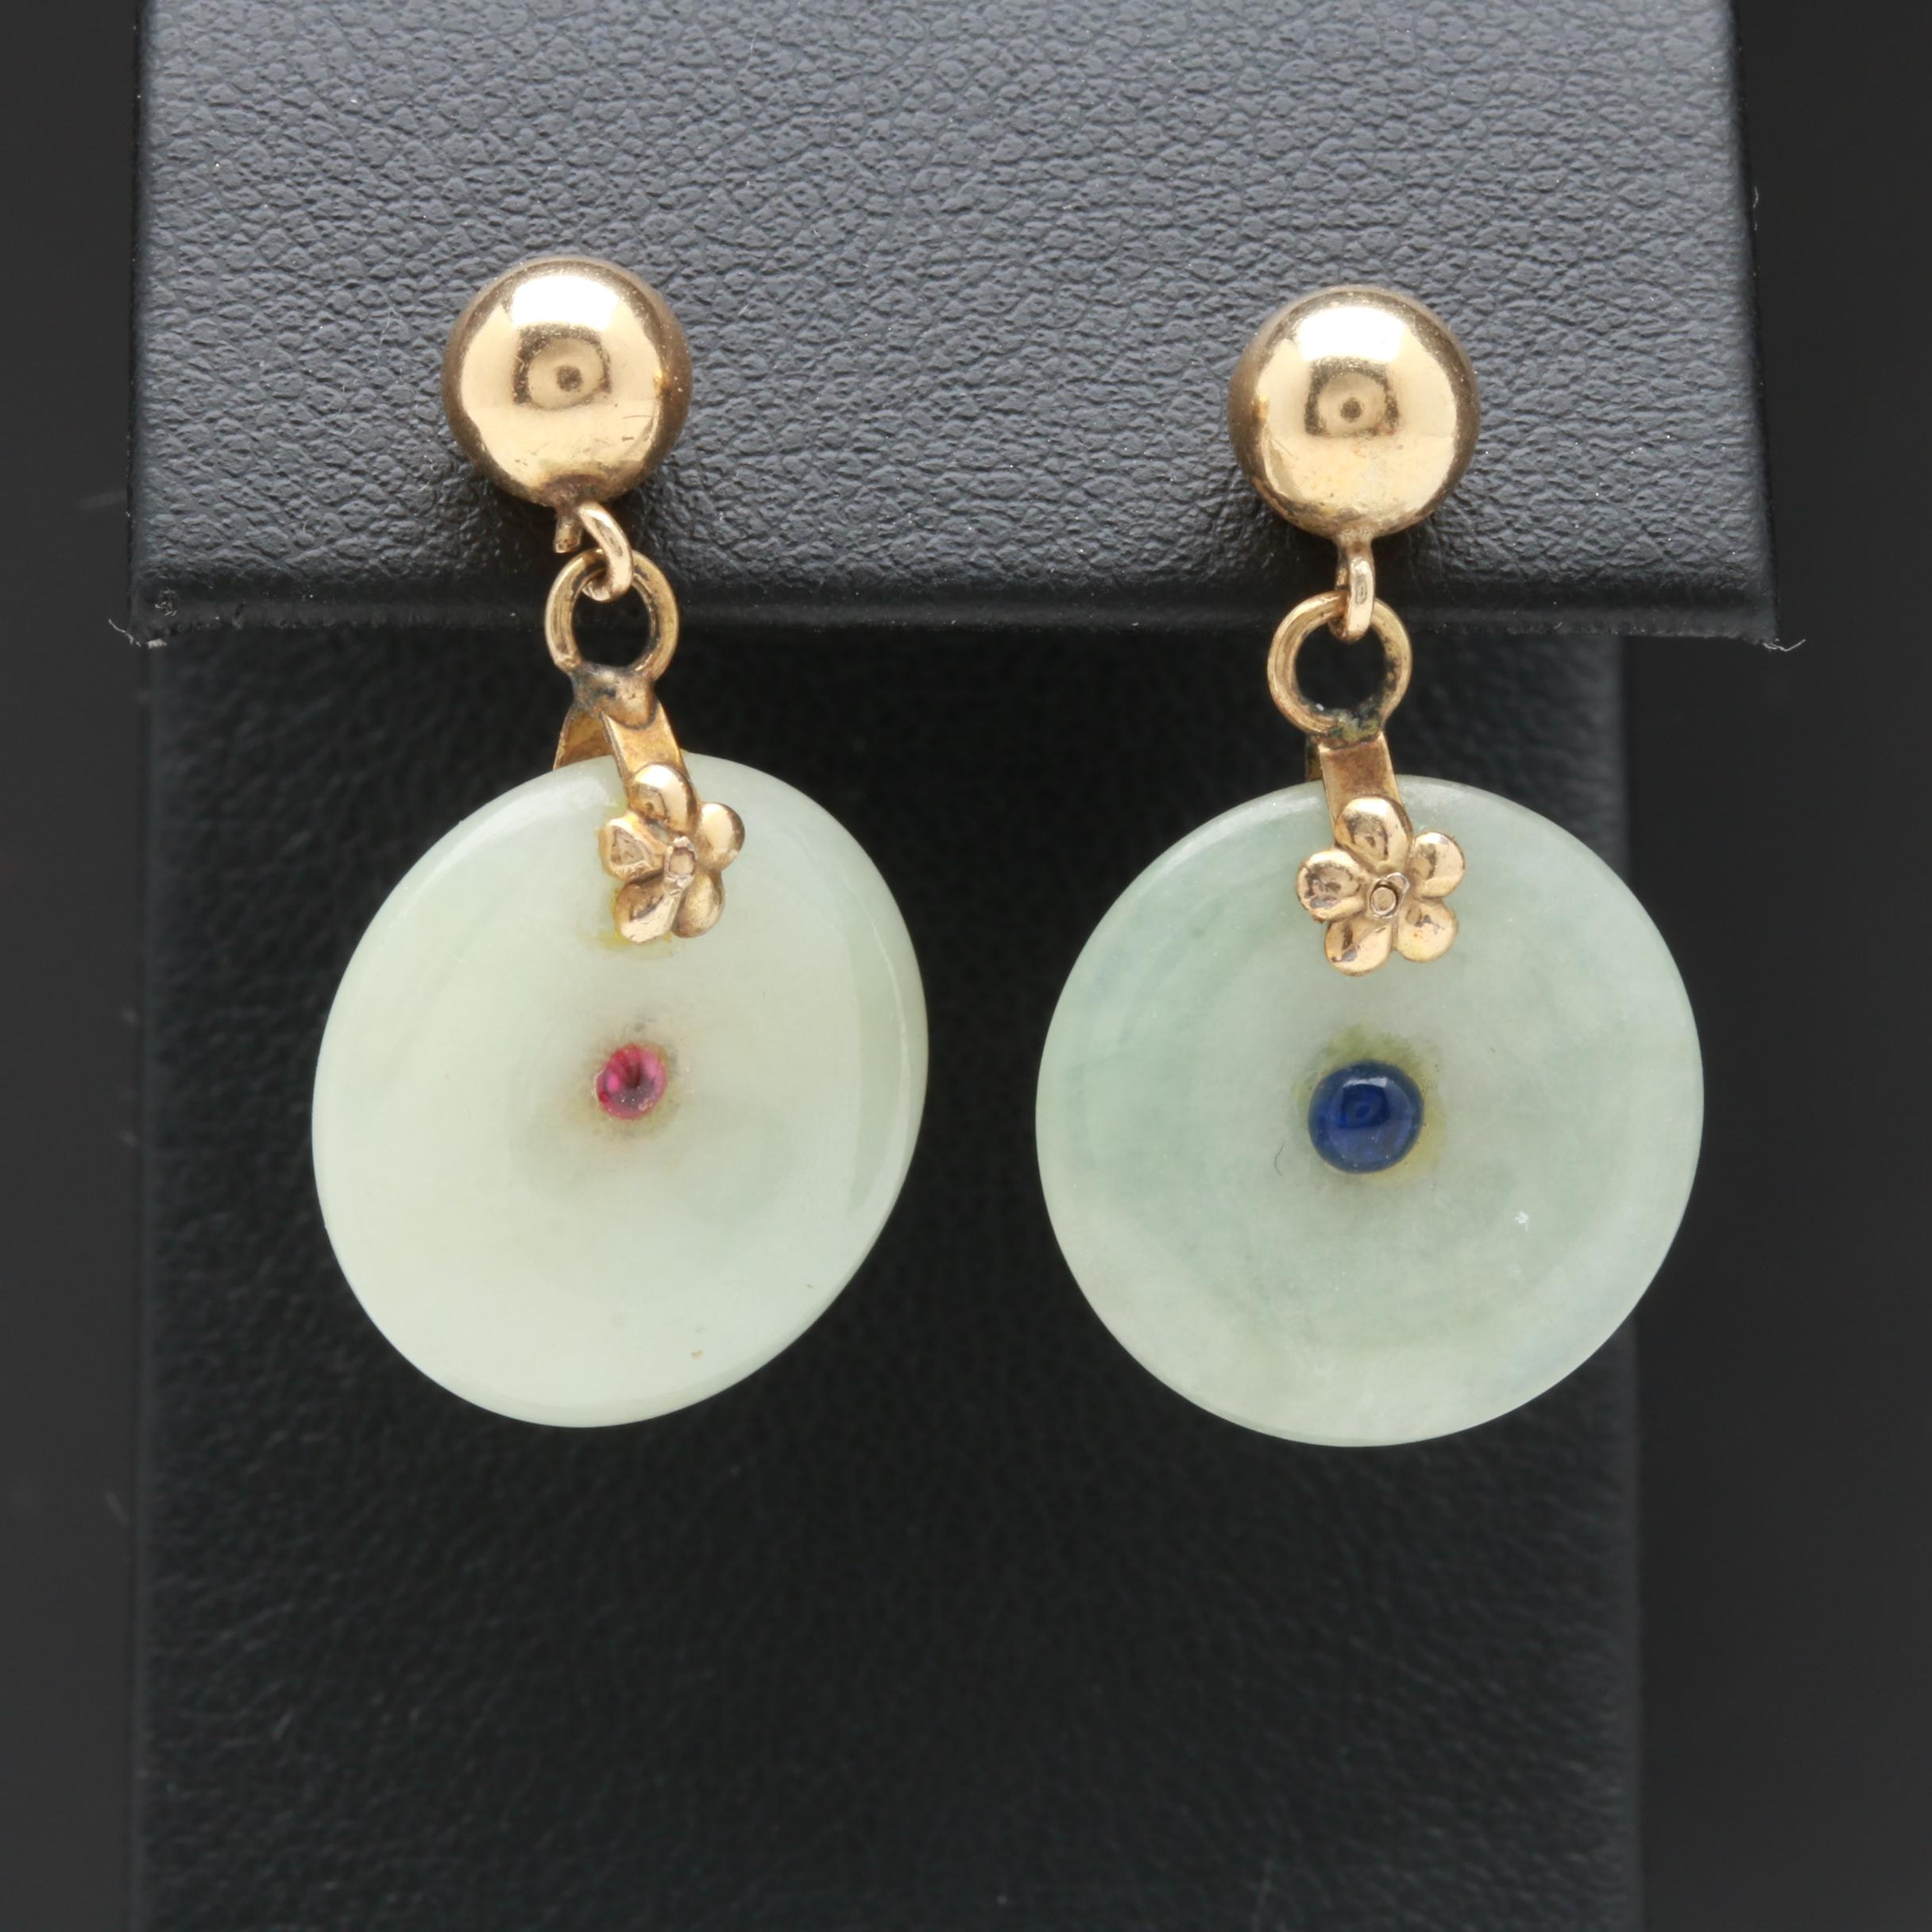 14K Yellow Gold Jadeite, Synthetic Ruby, and Blue Sapphire Earrings